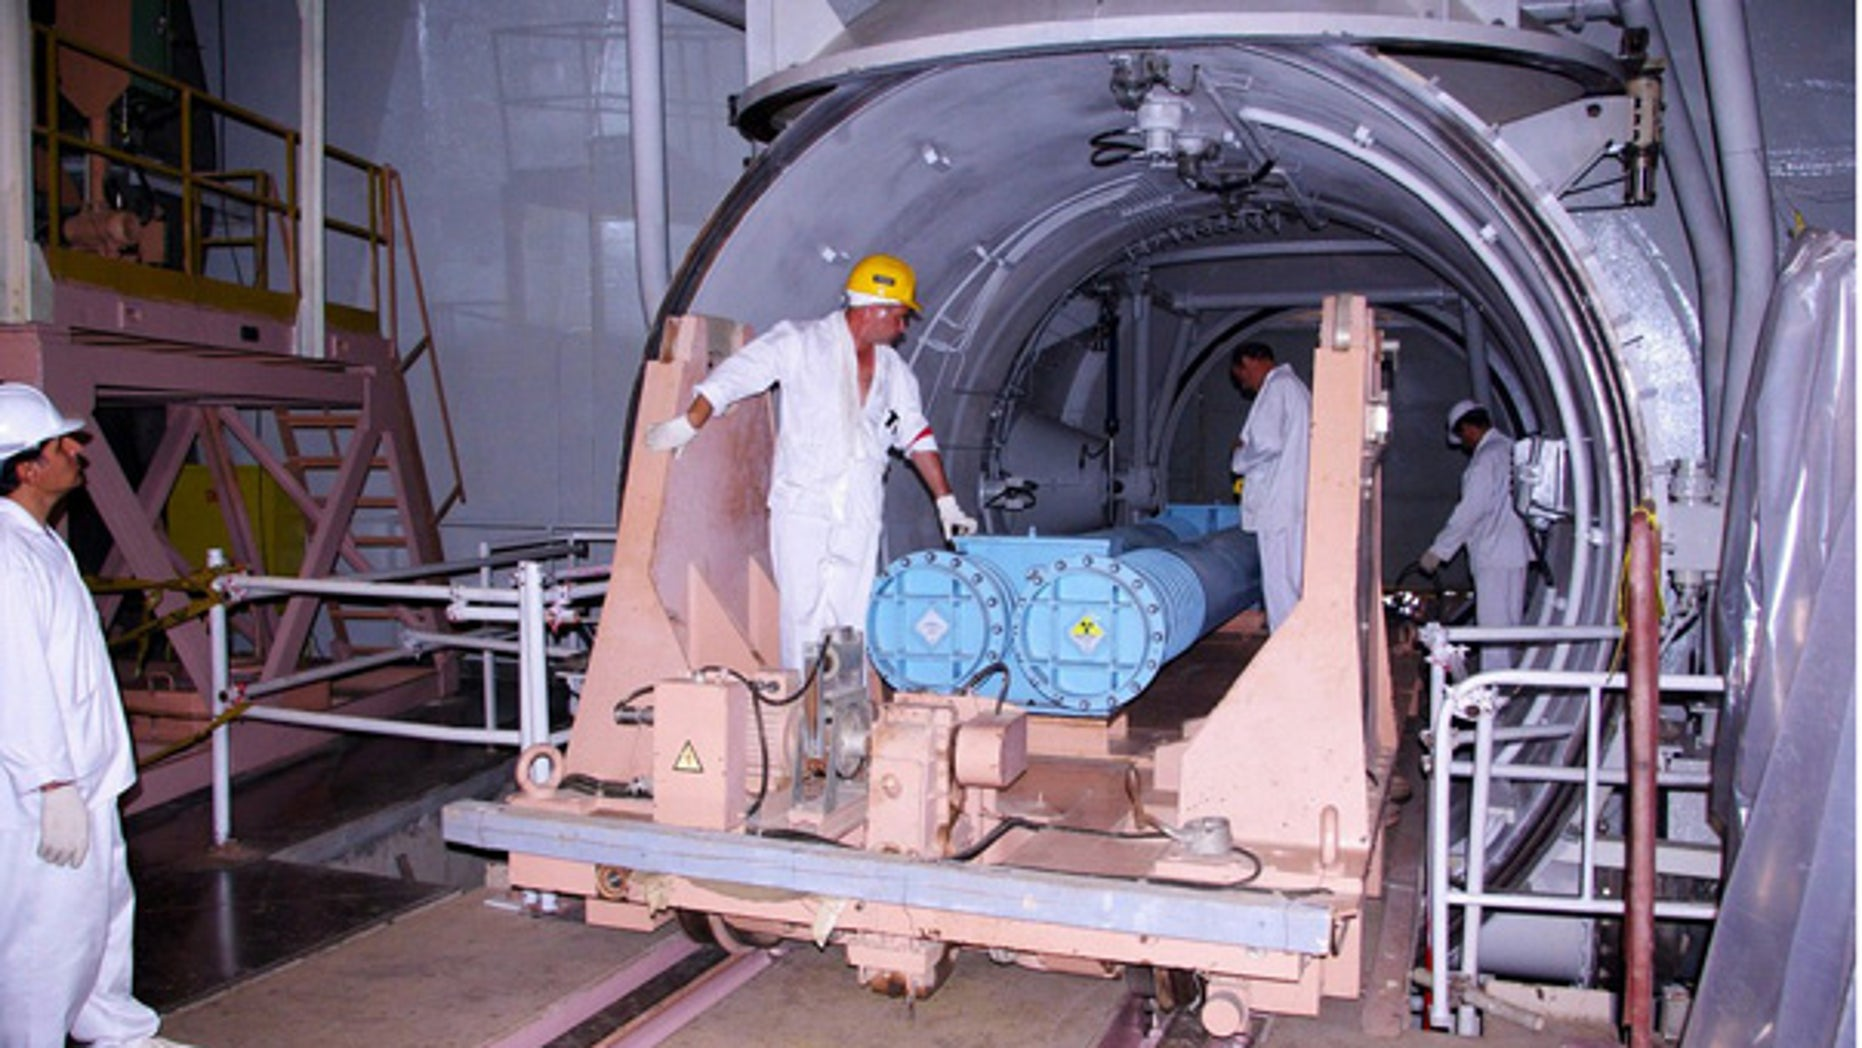 Aug 21: The first fuel is loaded into the reactor building at the Russian-built Bushehr nuclear power plant in Iran.